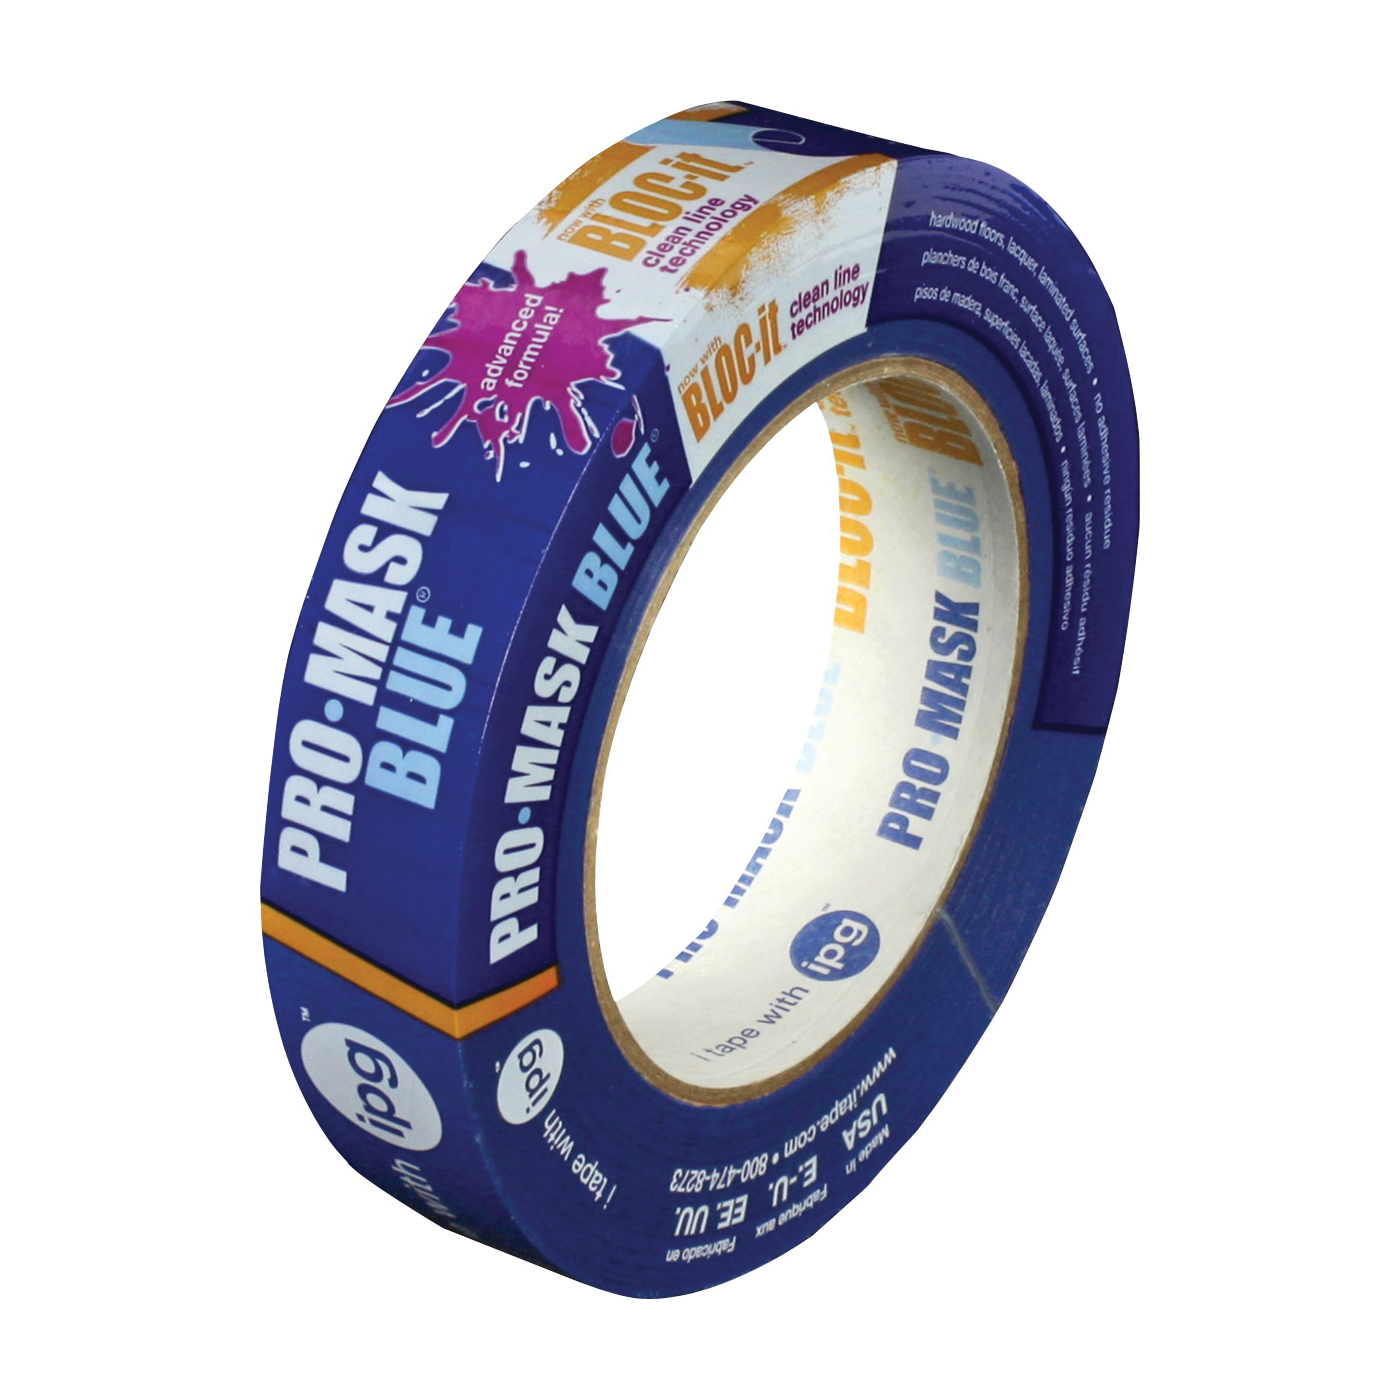 Picture of IPG 9531-1 Masking Tape, 60 yd L, 0.94 in W, Crepe Paper Backing, Blue